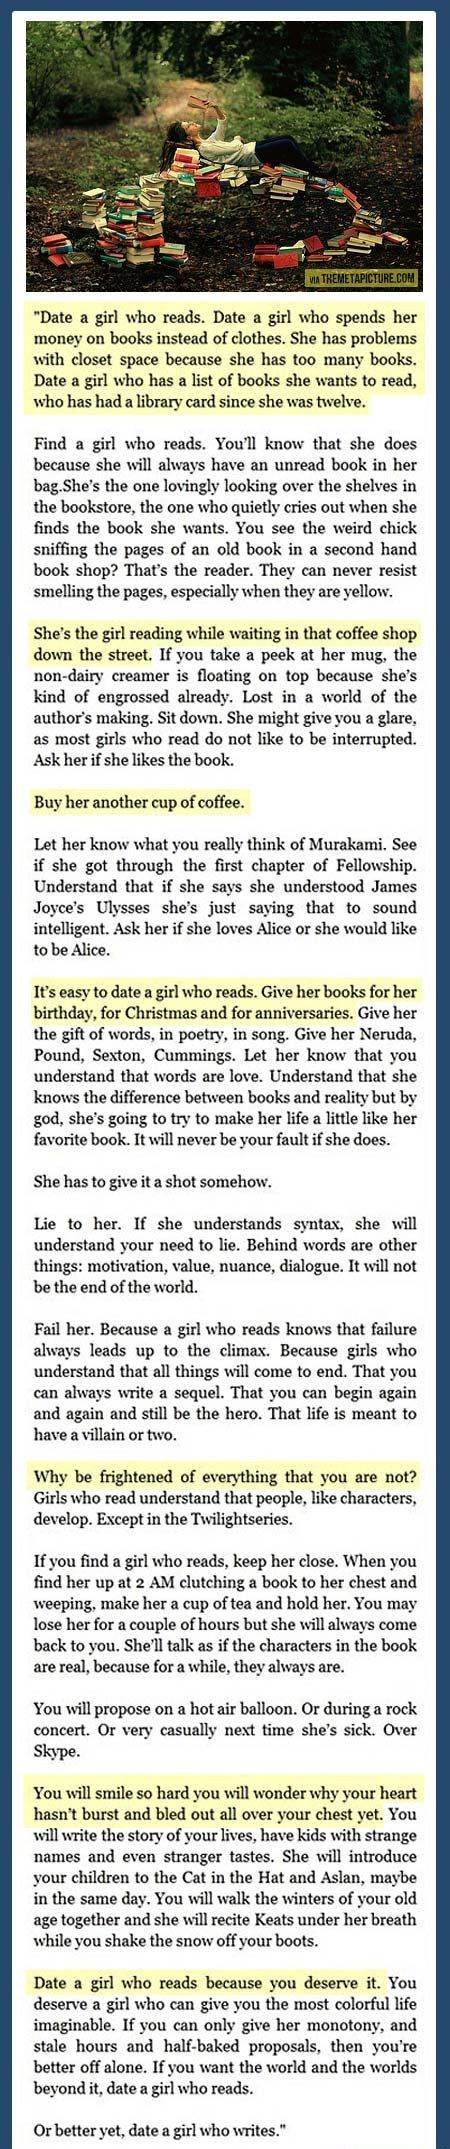 Find a girl who reads… one of my all time favorite quotes.